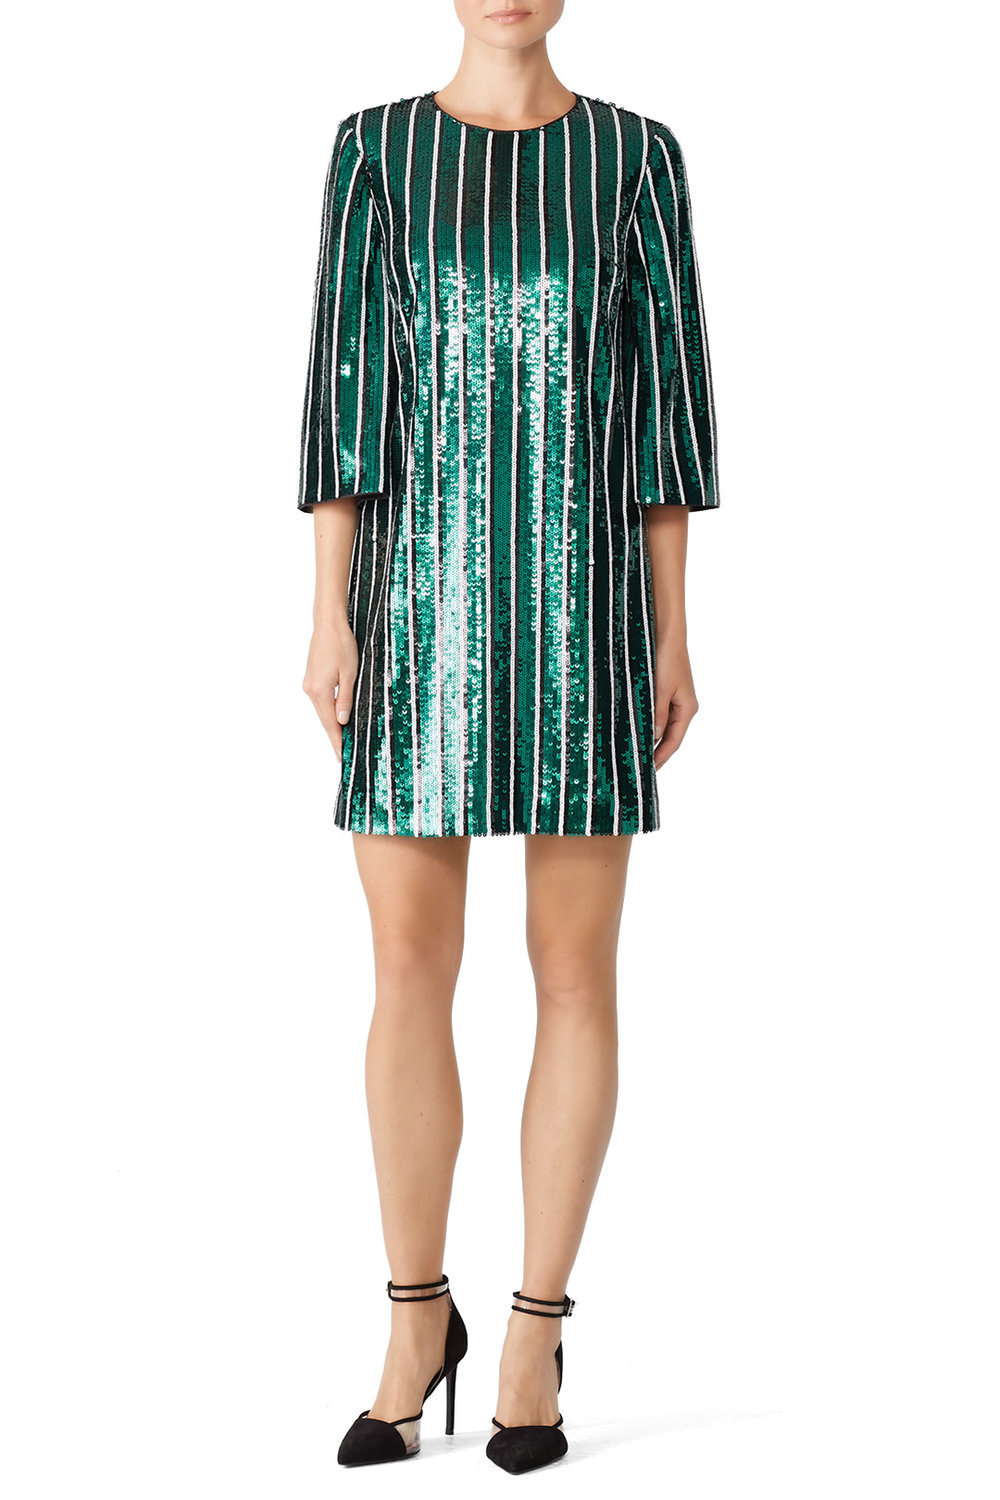 Badgley Mischka Green Stripe Sequin Sheath - IDK I just like this. You should rent it.